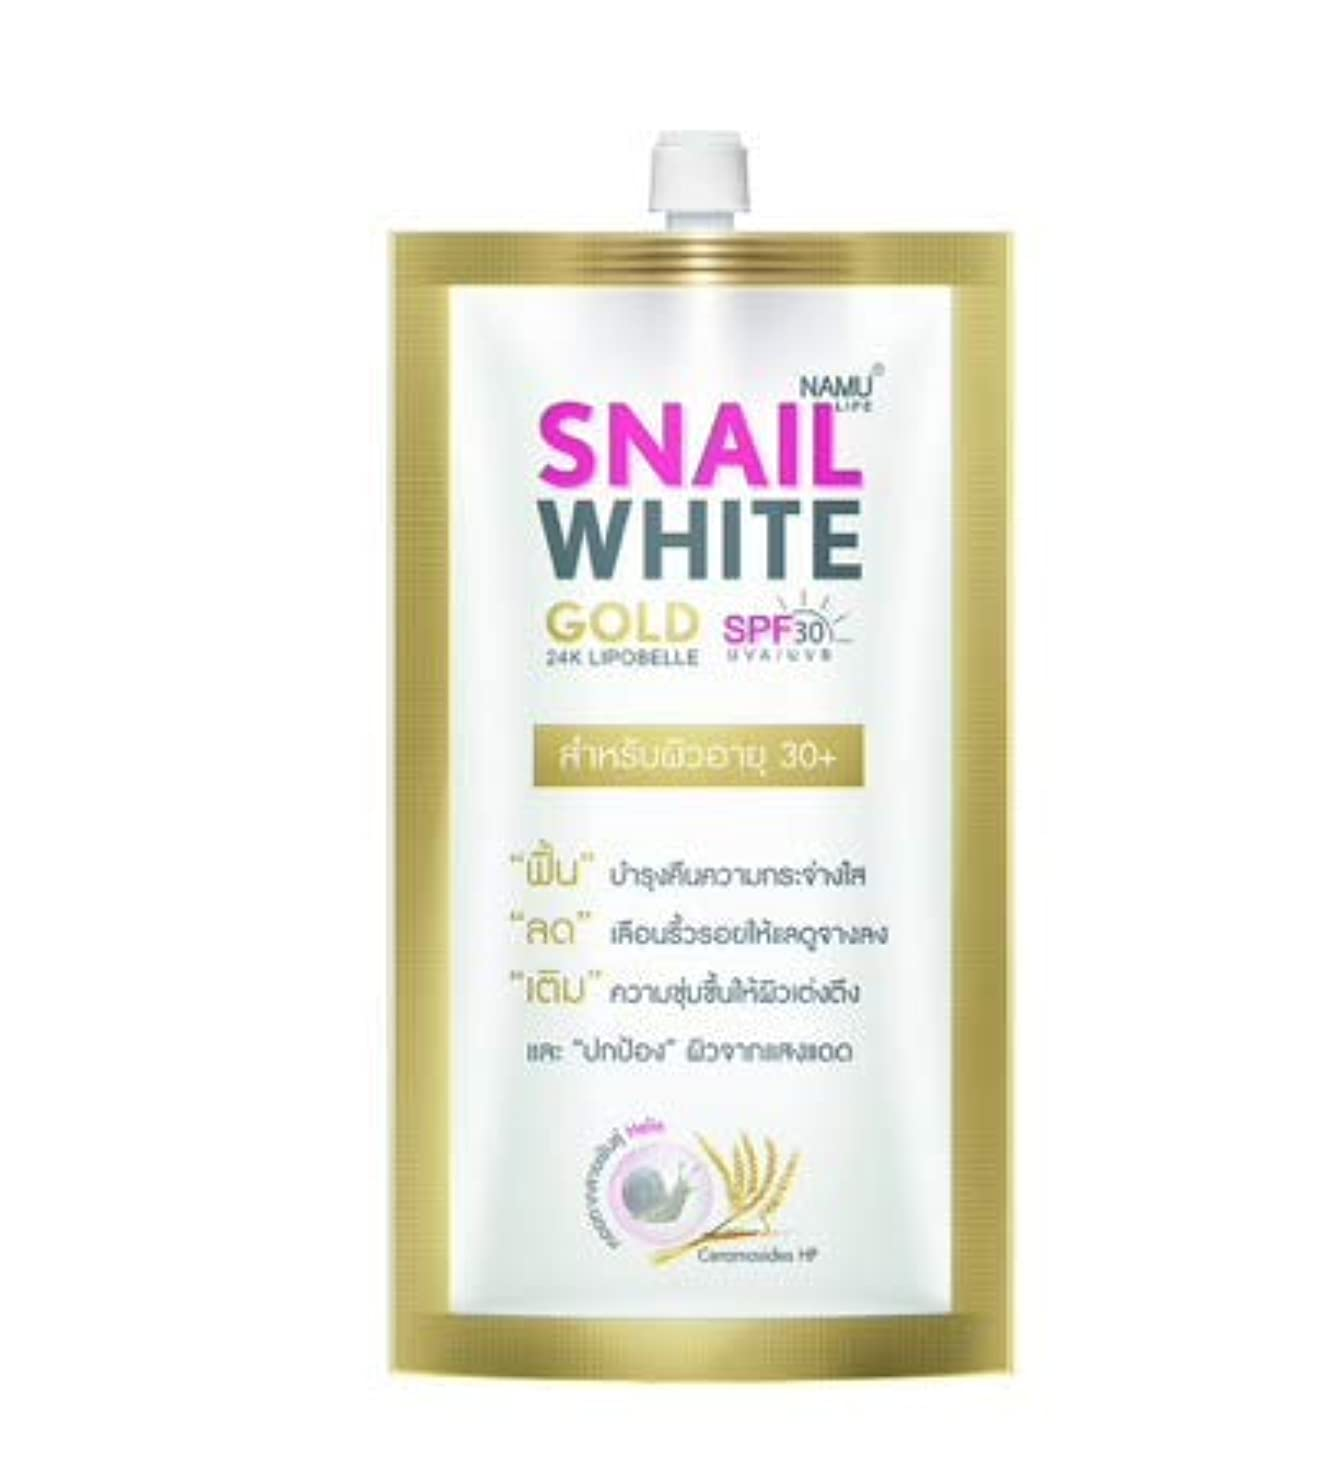 Snail White Gold SPF 30 / PA +++ Size 7 ml.